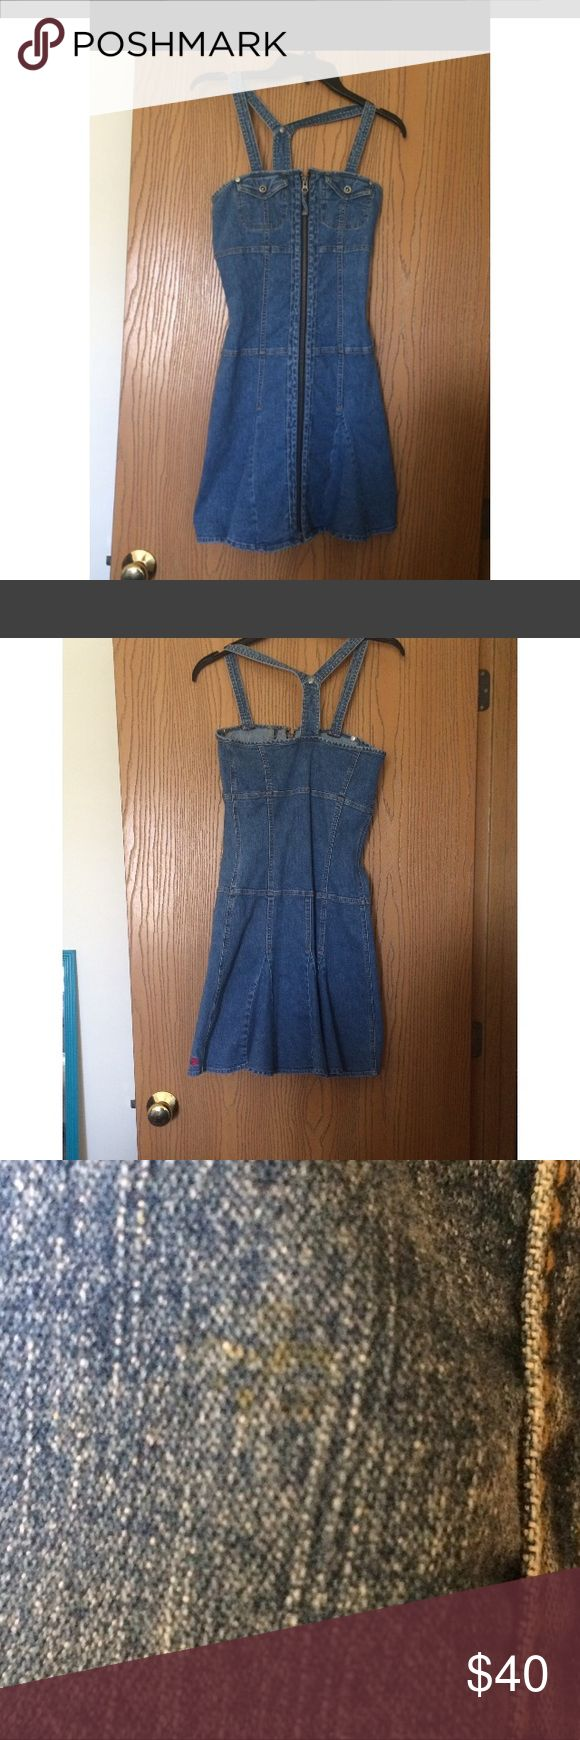 Tommy Jeans Denim Dress Vintage Denim dress from tommy Highfligher! Be totally in style this summer with this awesome dress! Would look great paired with a crop top! Size small! Does have a small spot, should wash out and is pictured! Tommy Hilfiger Dresses Midi